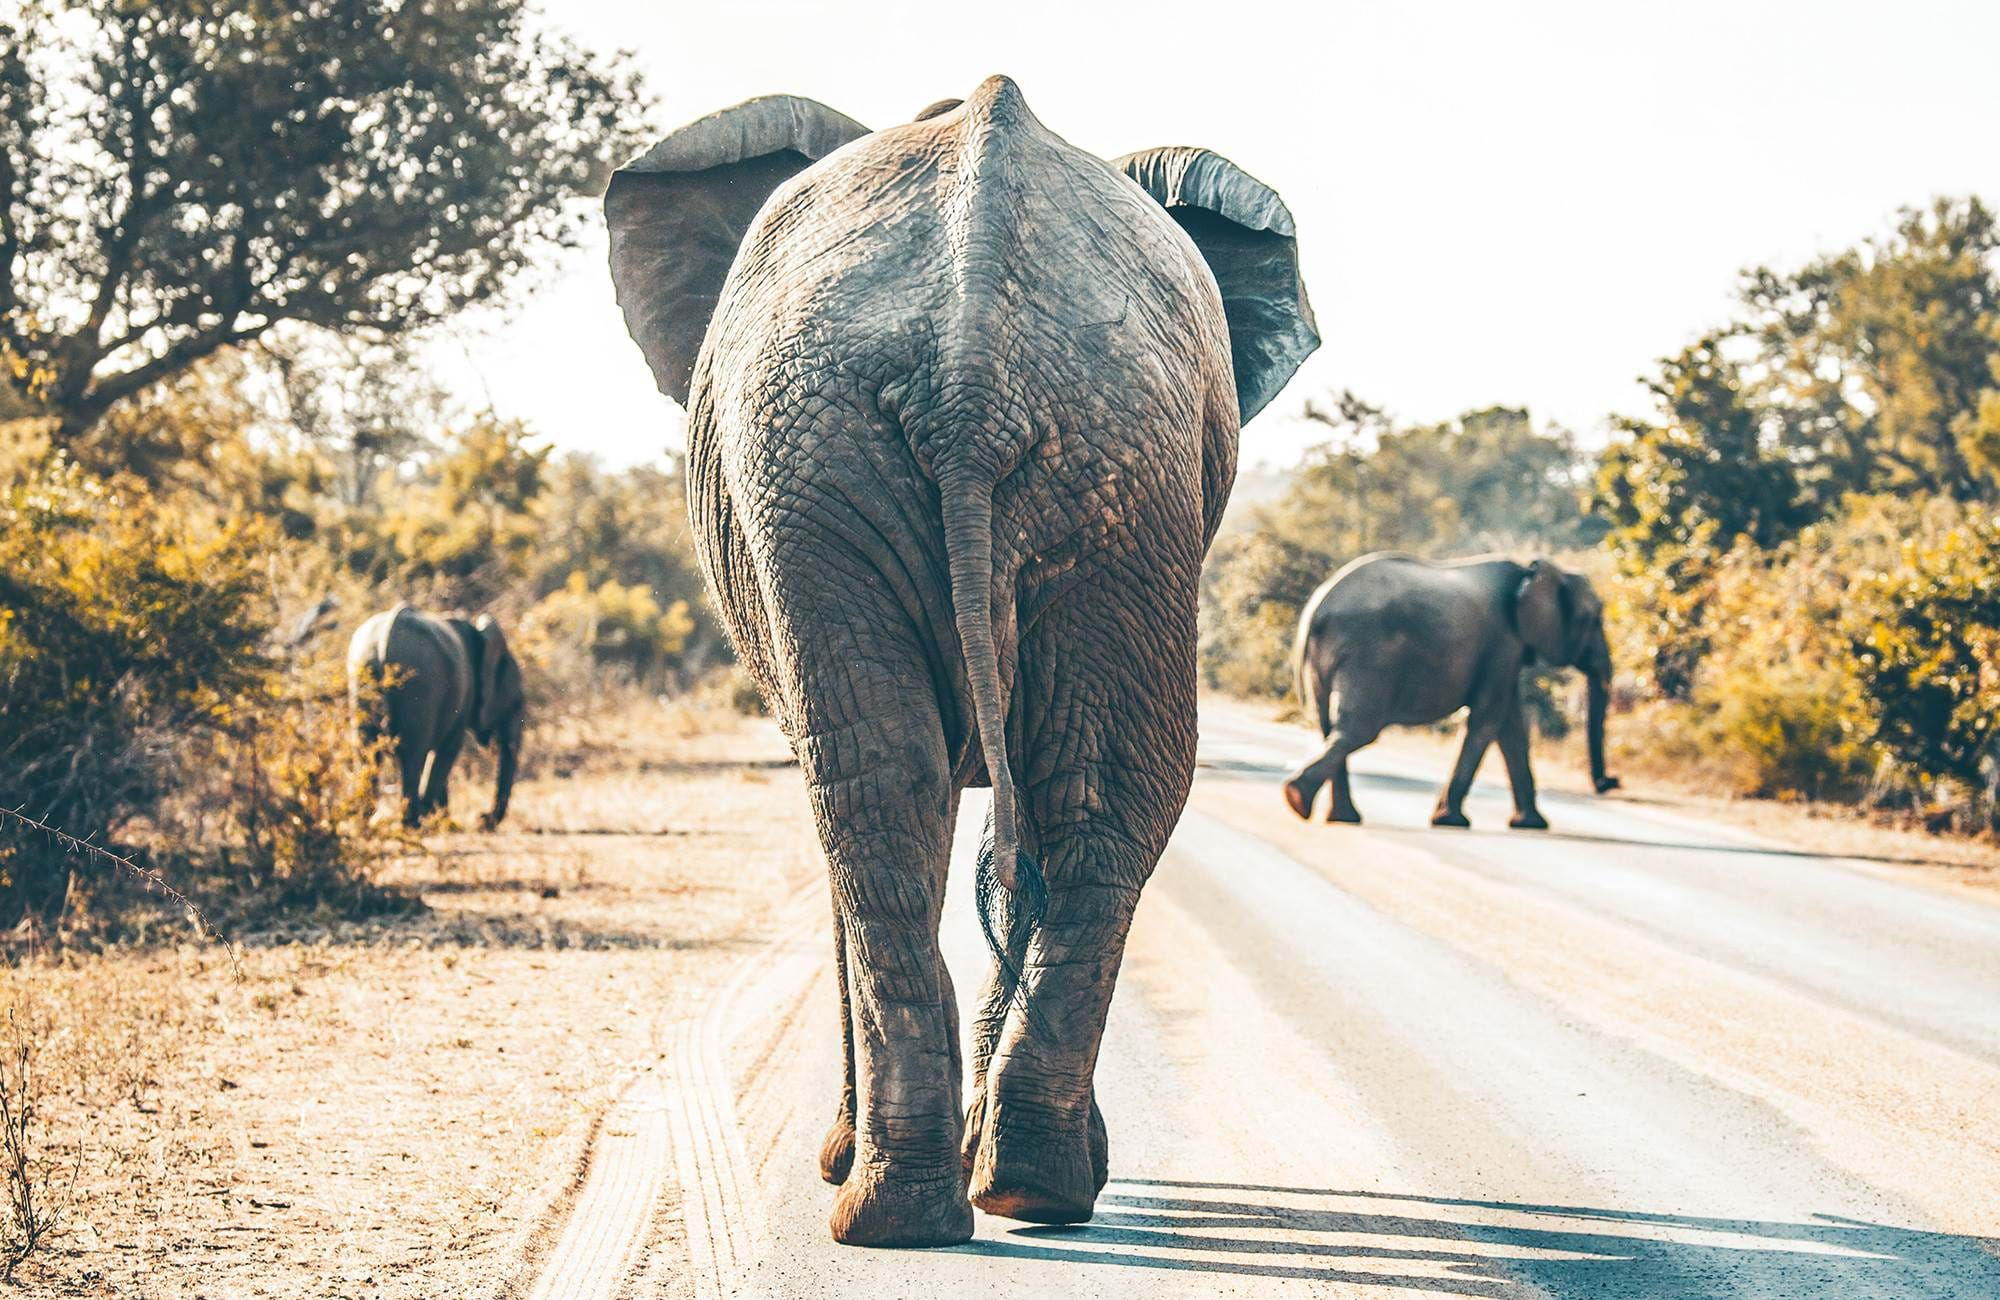 Explore Kruger National Park when in South Africa